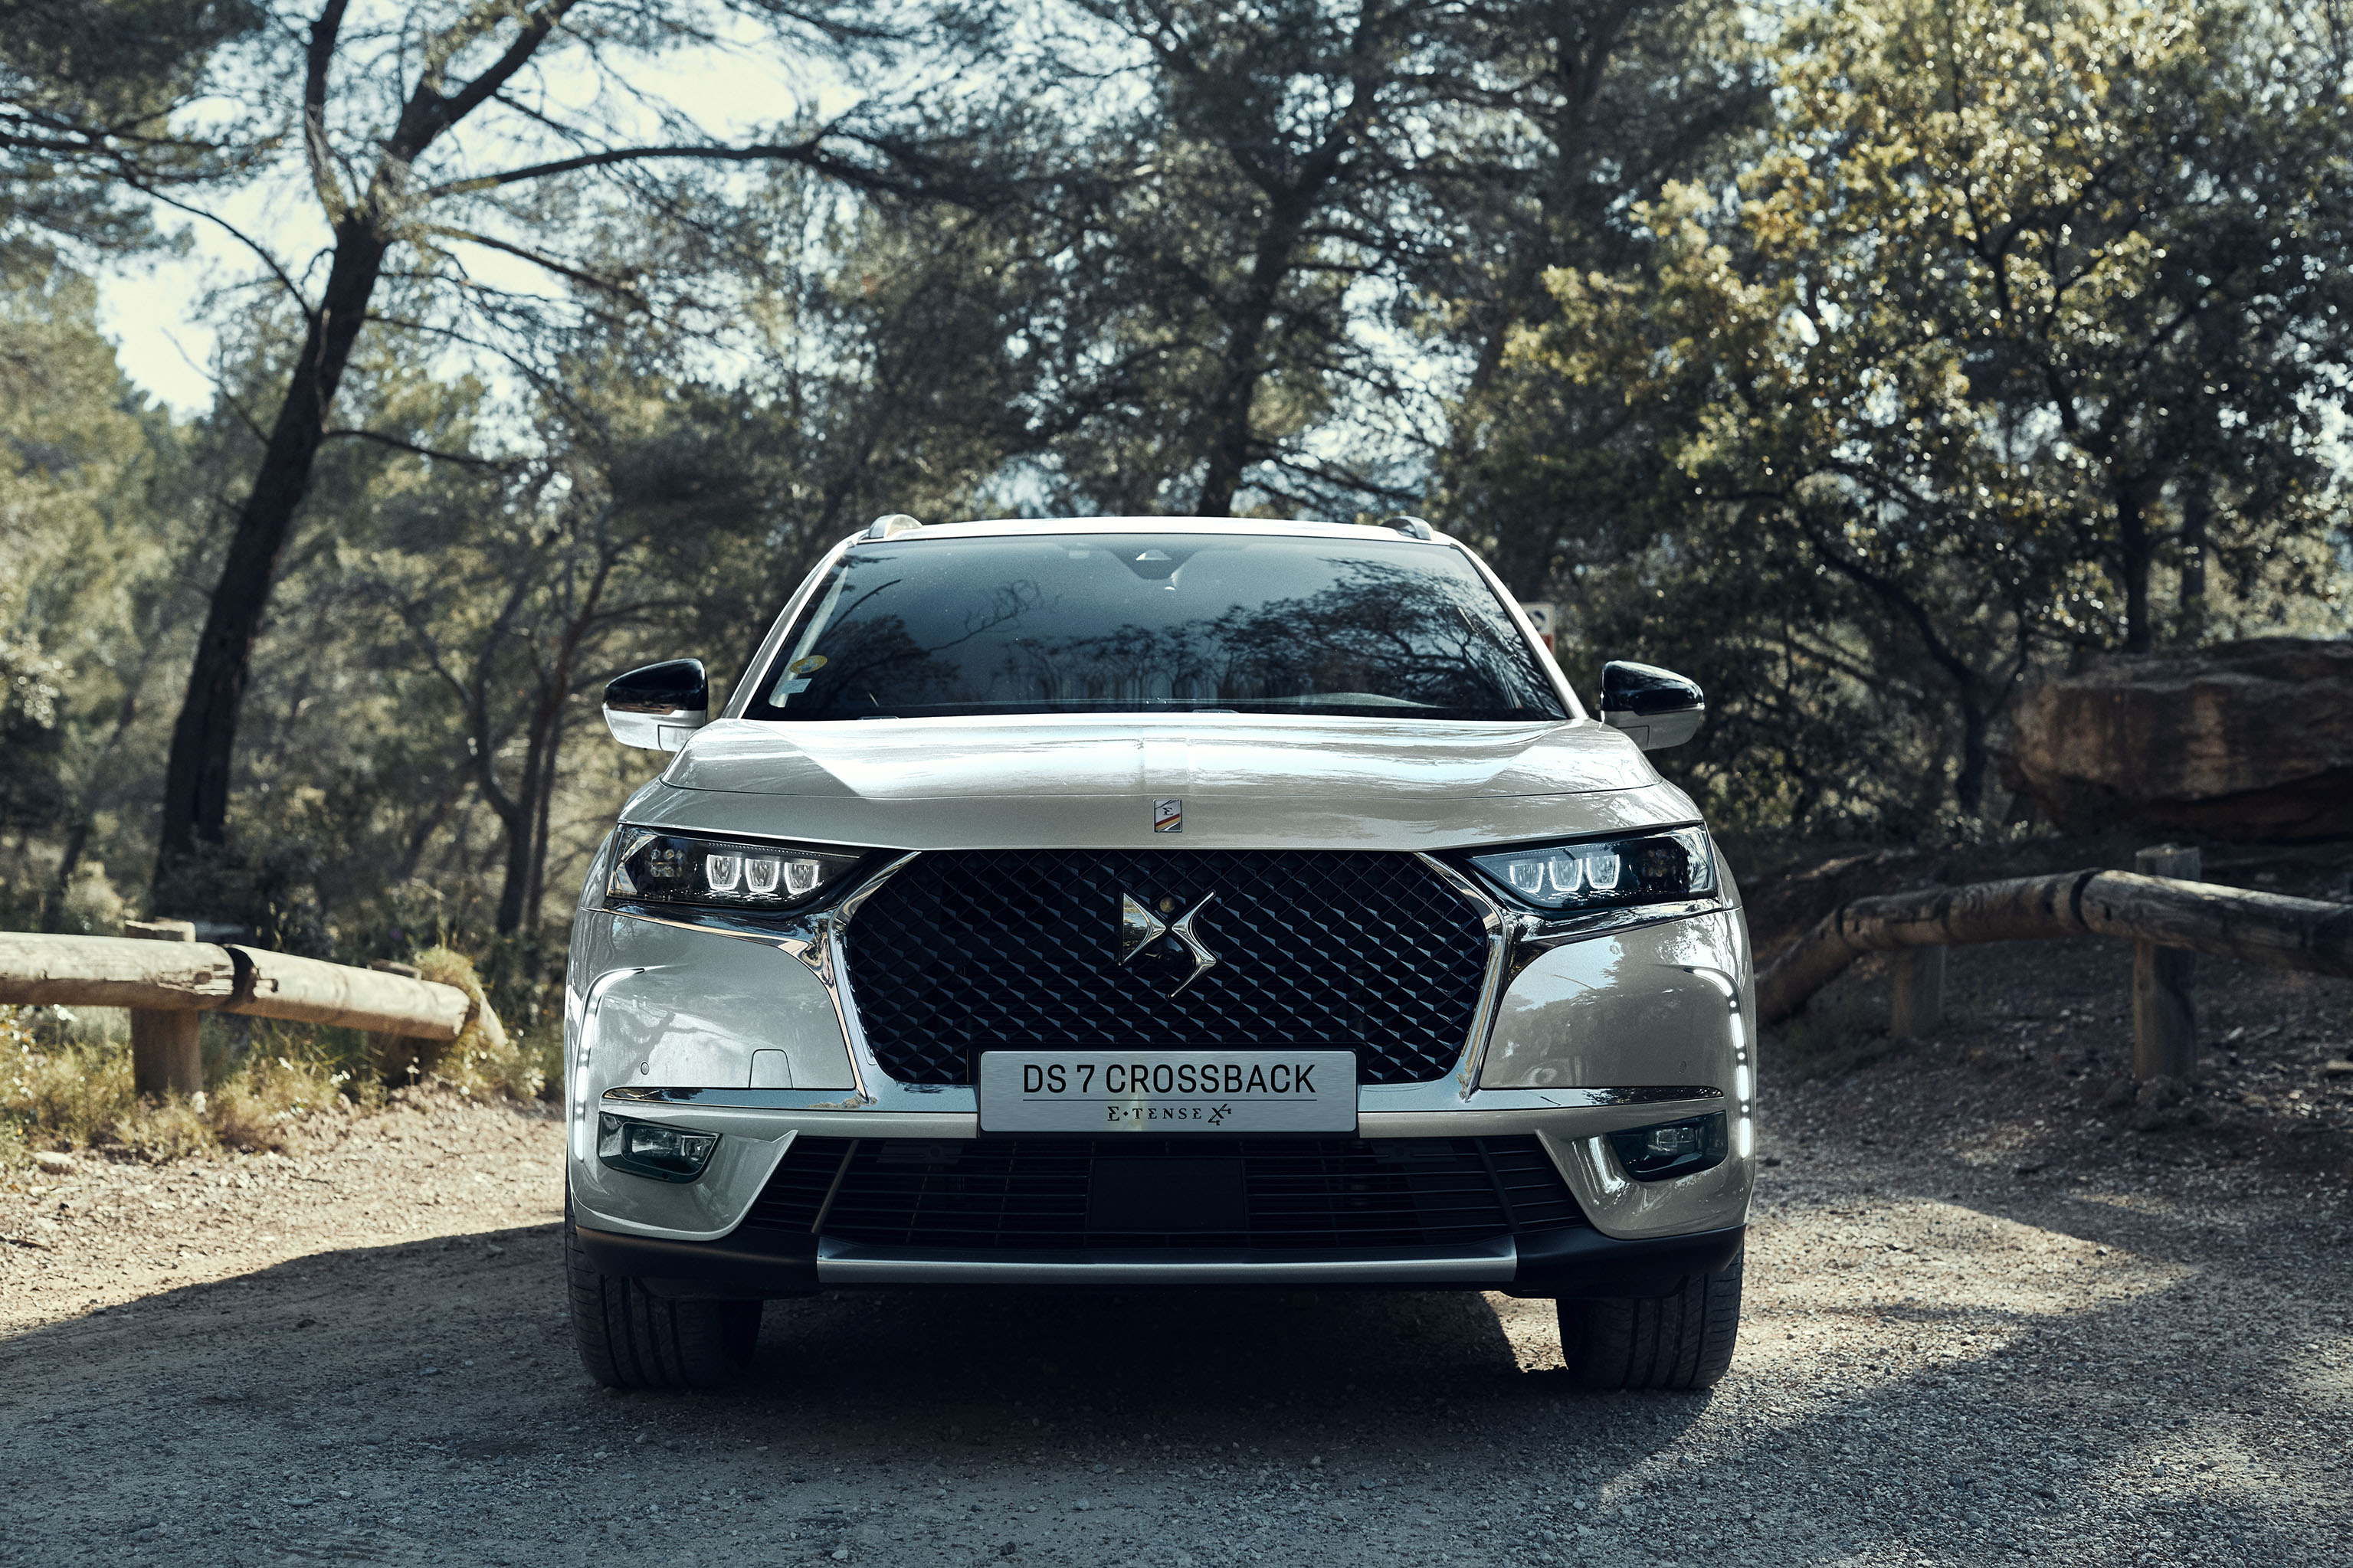 2018 DS 7 Crossback e-Tense 4x4 #512733 - Best quality free high ...